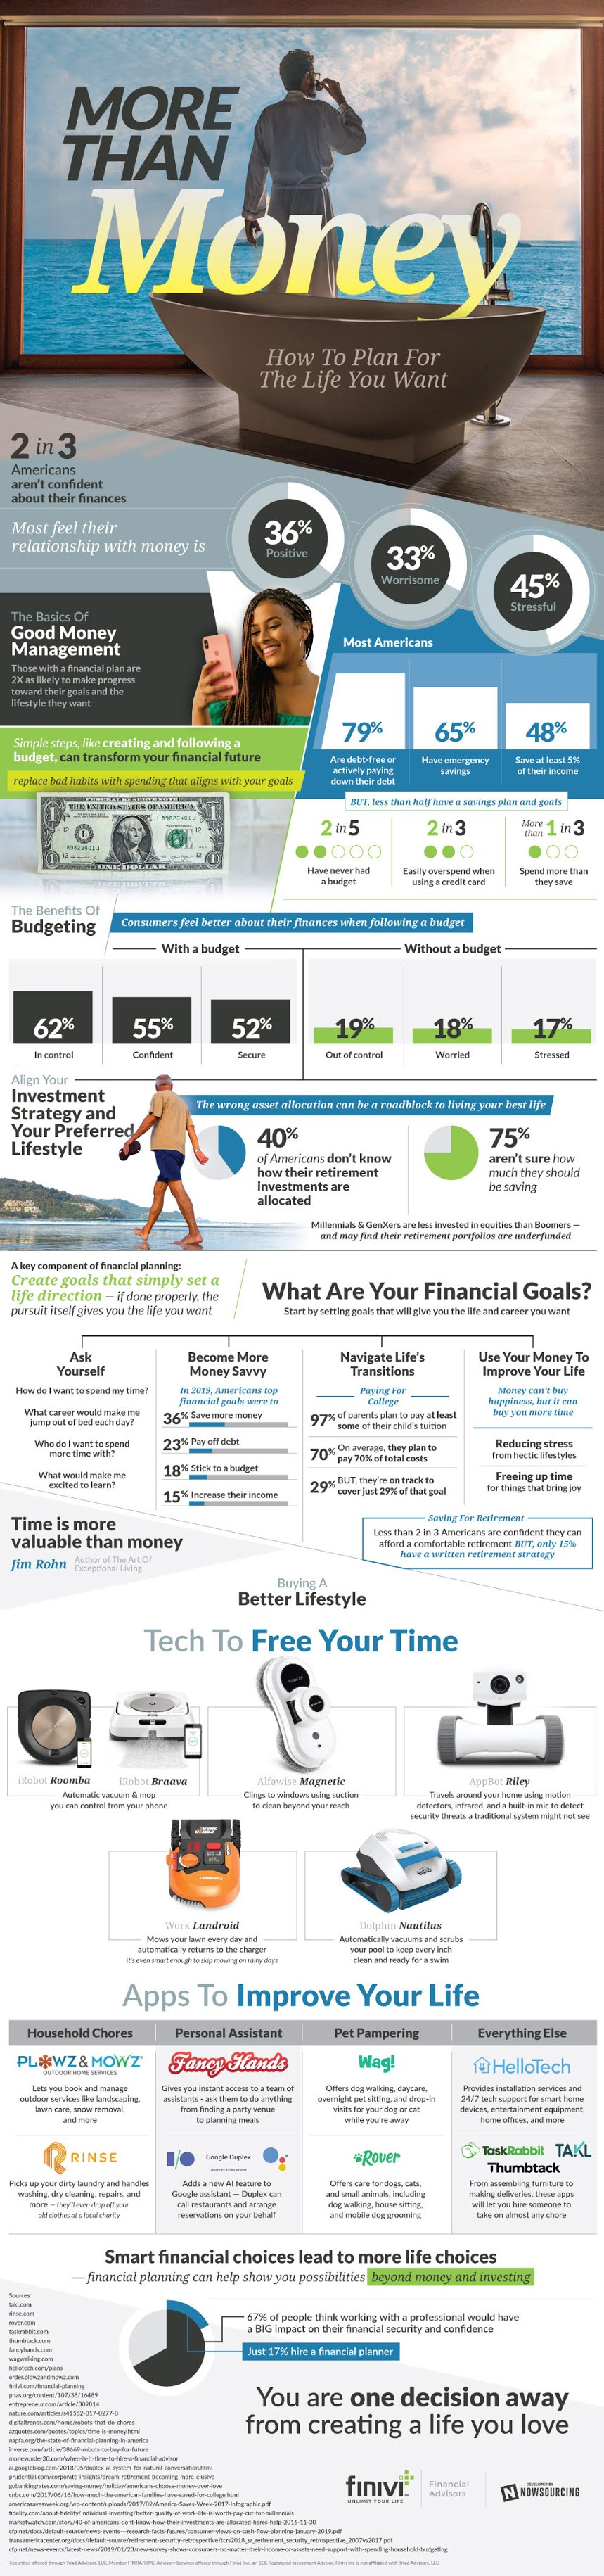 More Than Money – How to Plan for the Life You Want #infographic  #Life style #infographics #Money #Financial Planning #Life Goals